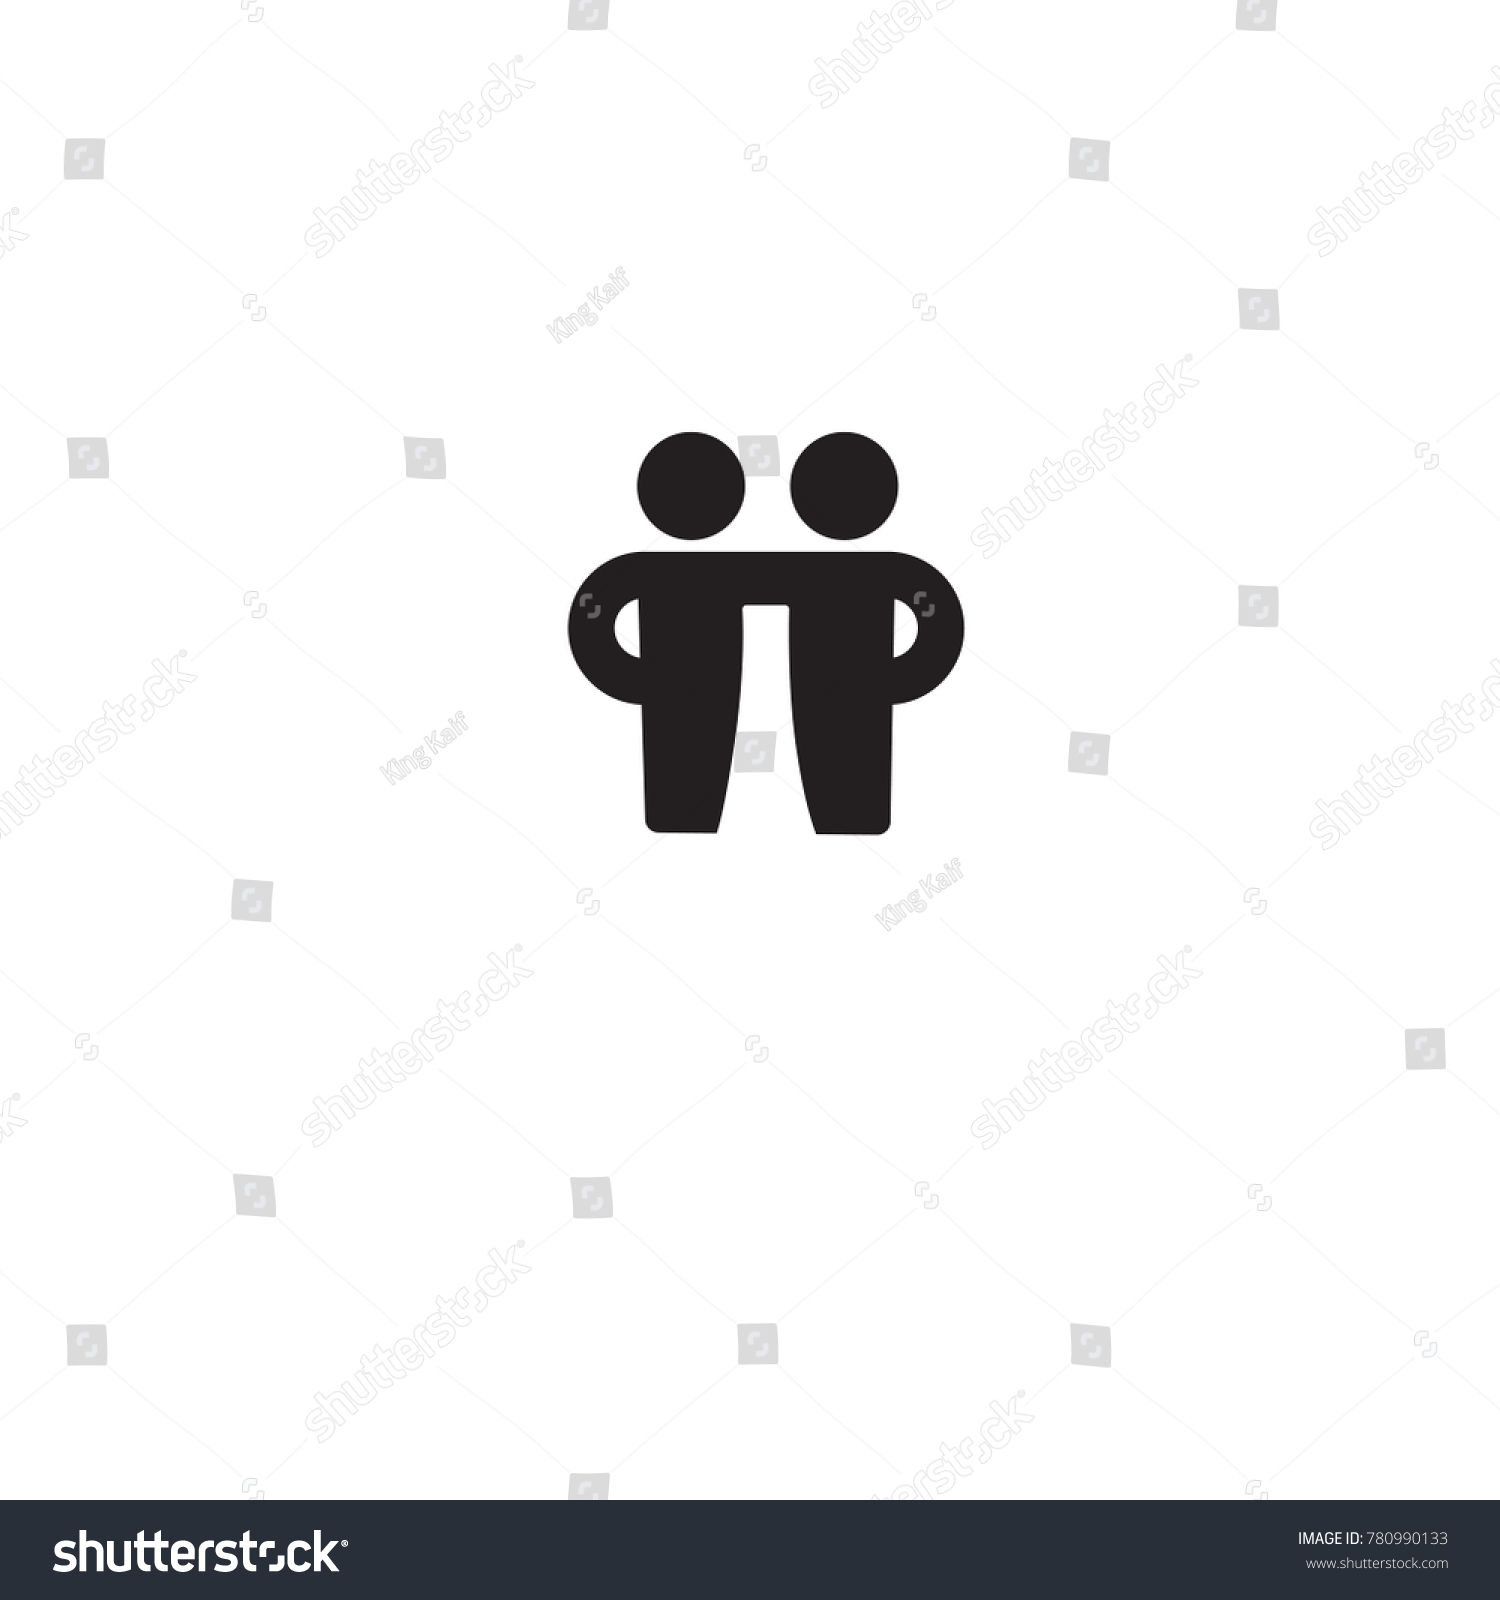 Old navy stock symbol gallery symbol and sign ideas symbol best friends image collections symbol and sign ideas friends icon vector illustration friendship sign stock biocorpaavc